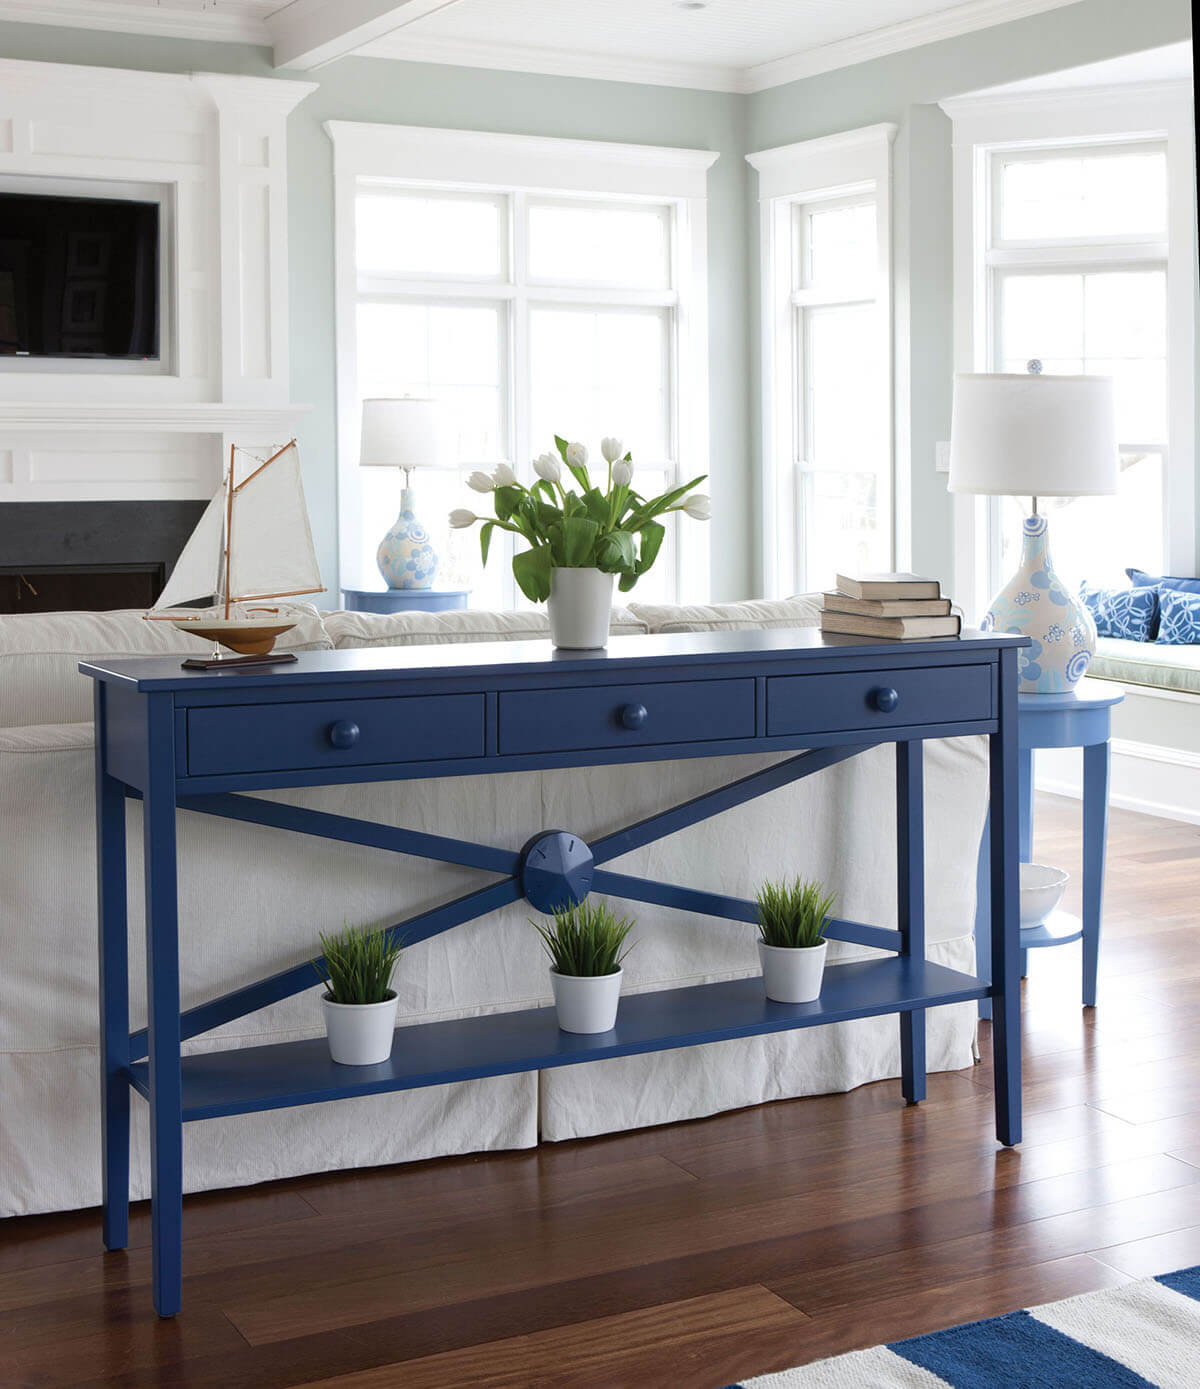 Cottage Console Table Best Home Interior - Cottage style console table